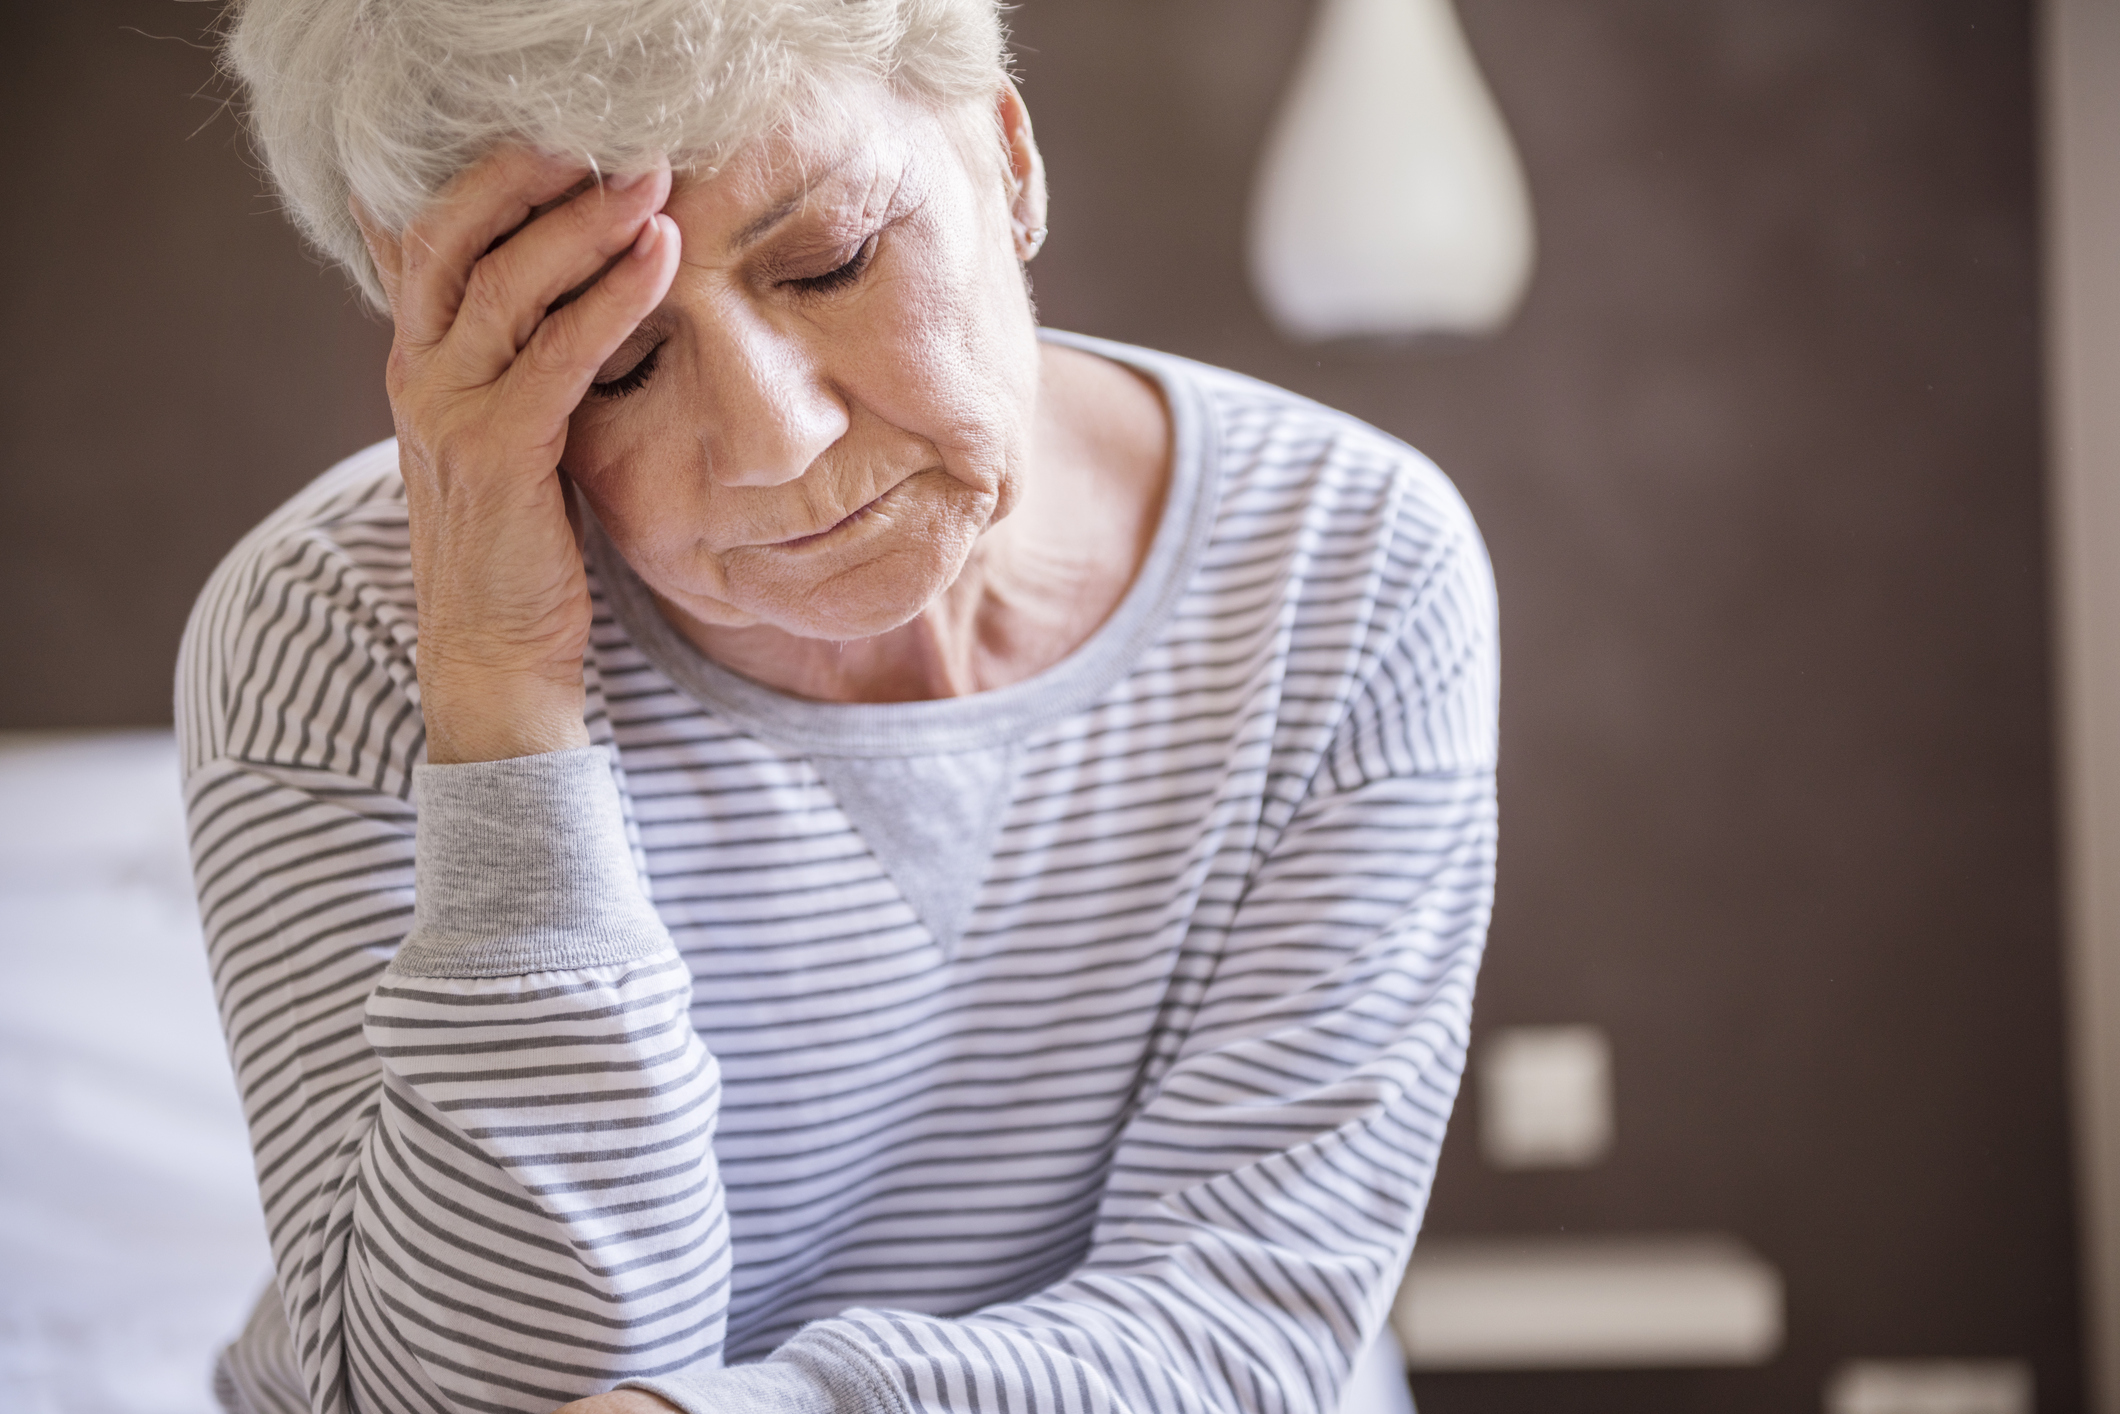 Seasonal depression in seniors can be difficult to manage. Here a senior woman feels blue.